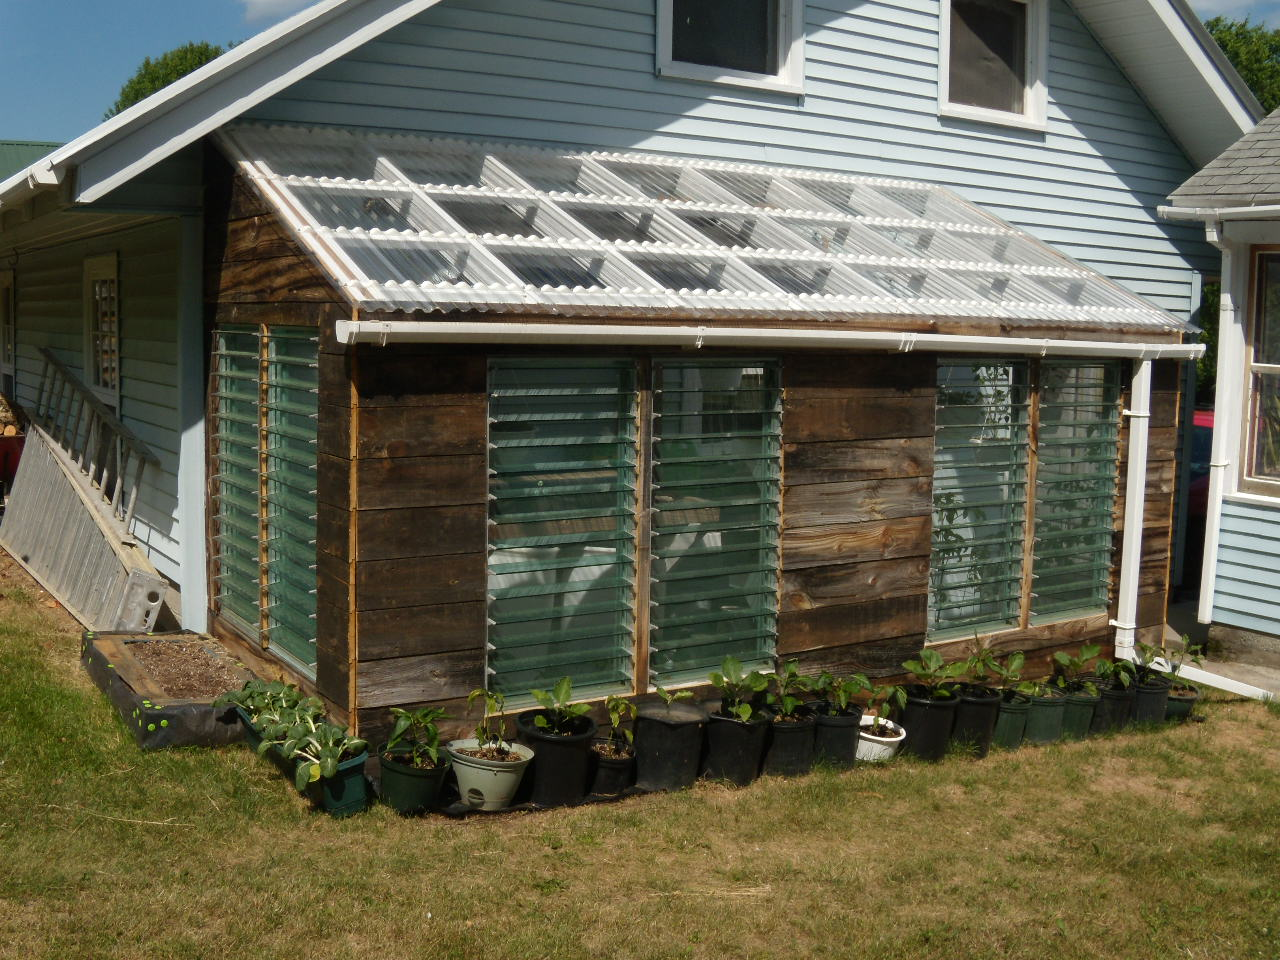 The Magic Greenhouse: How to Make a Cheap Greenhouse